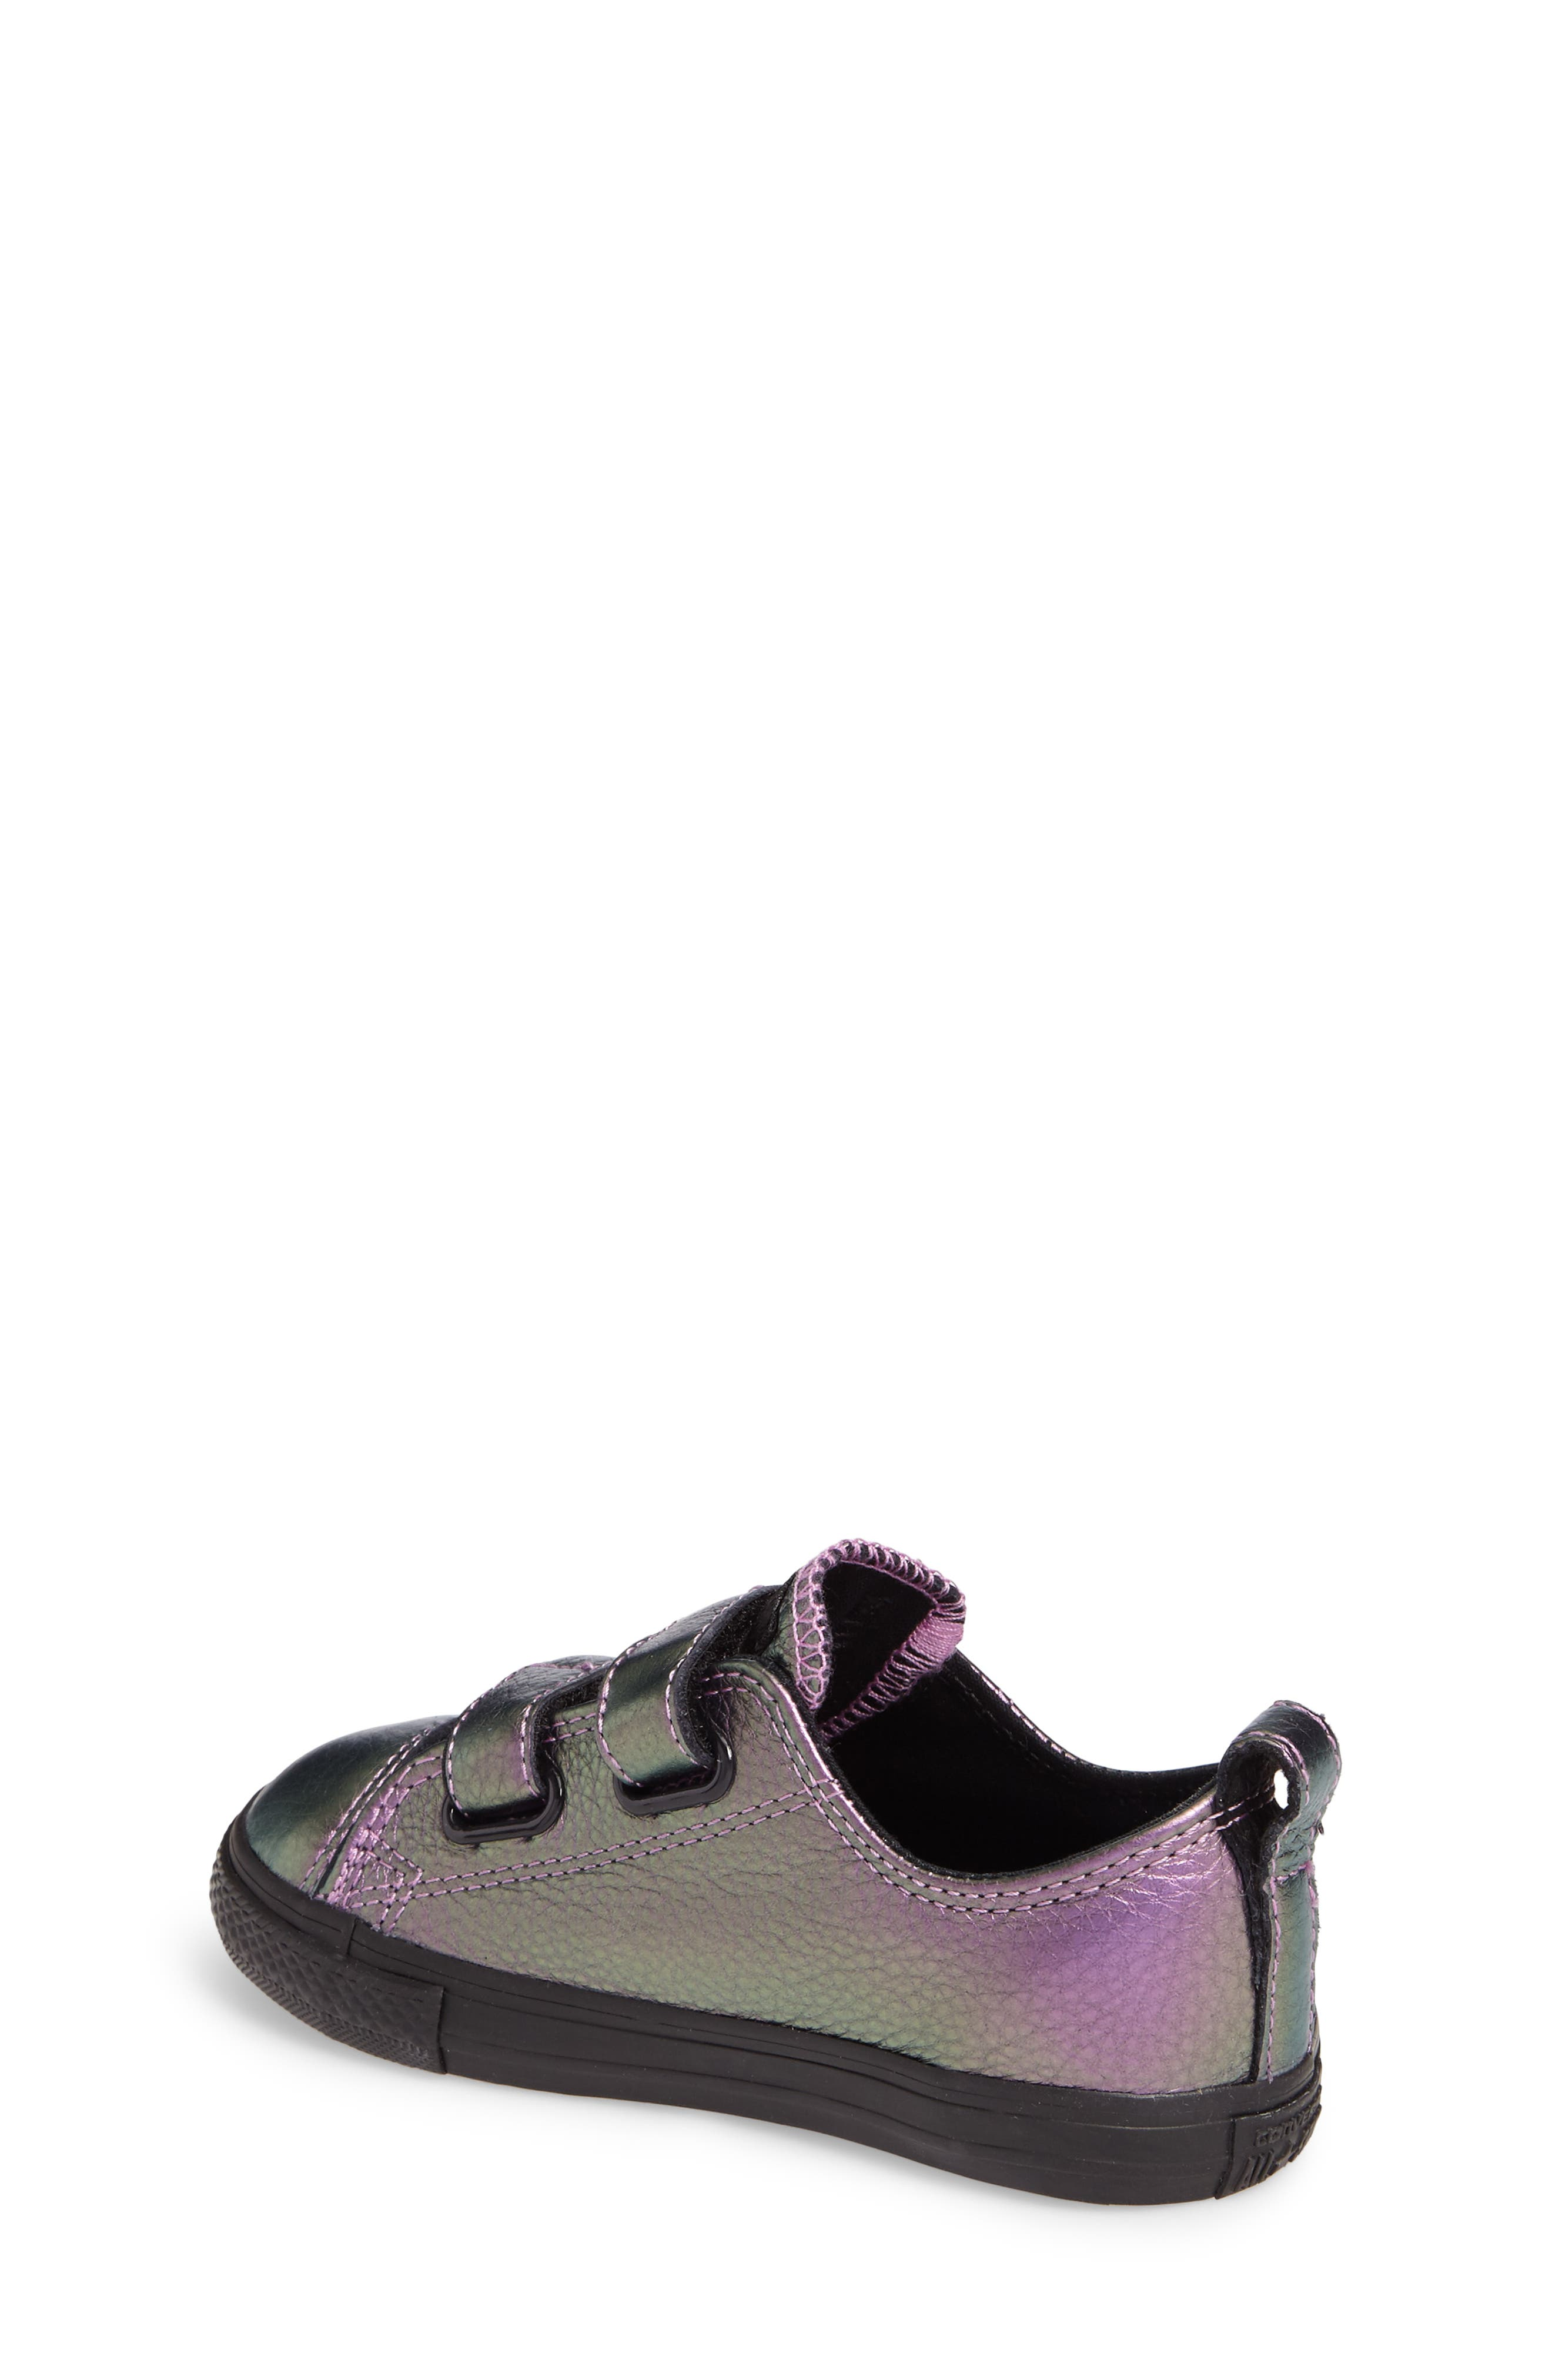 Alternate Image 2  - Converse Chuck Taylor® All Star® Iridescent Leather Low Top Sneaker (Baby, Walker & Toddler)